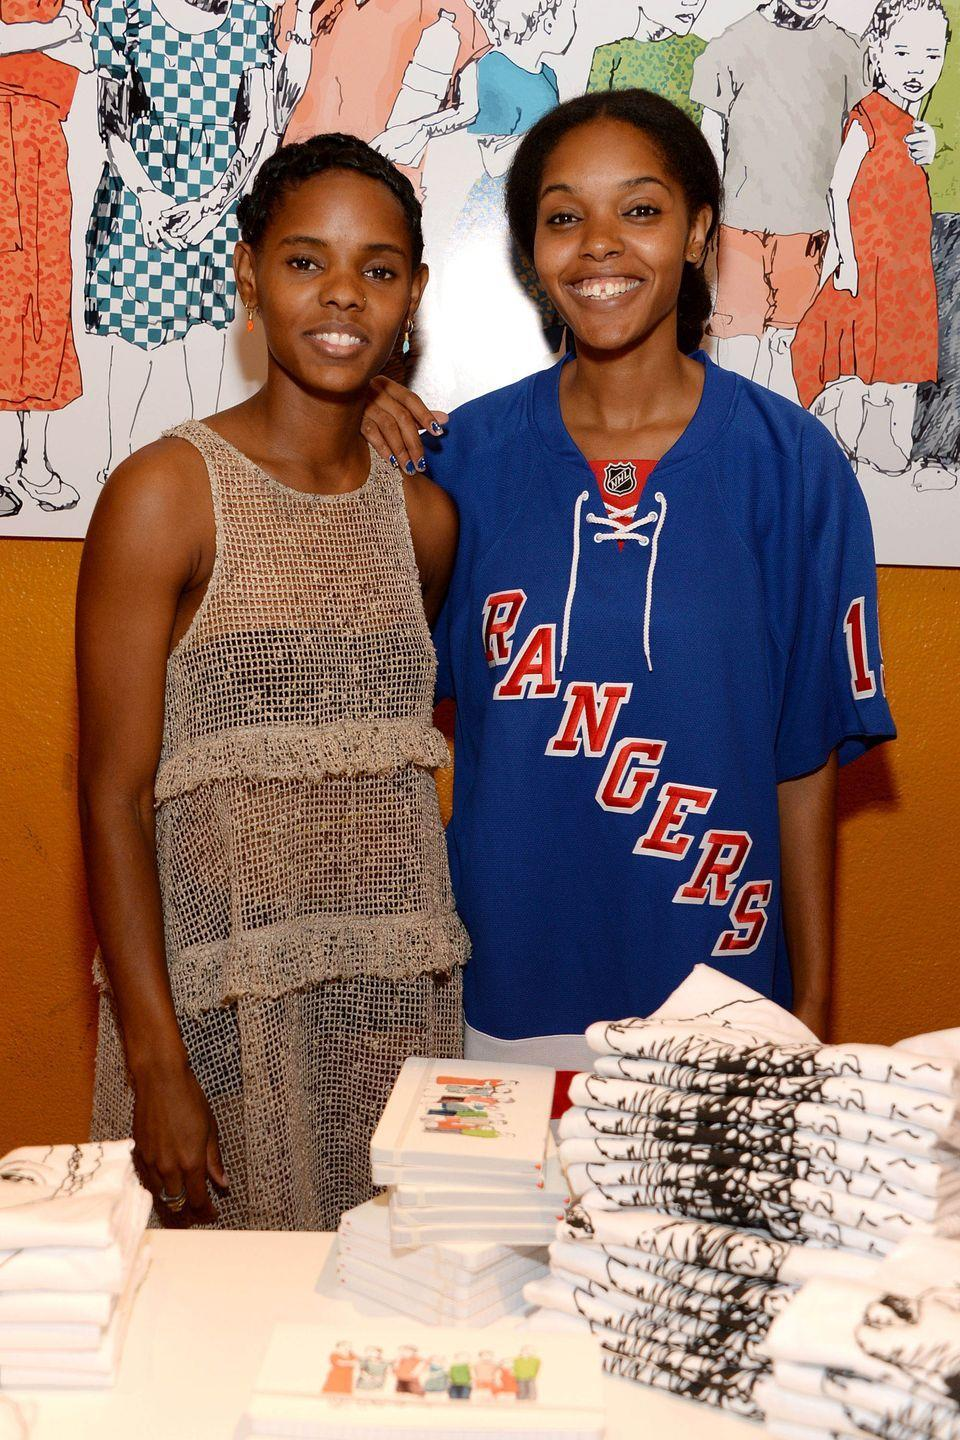 "<p>Darlene and Lizzy Okpo named their brand after their stylish Nigerian father, who immigrated to New York in 1976 with just $80 in his pocket. The label launched with womenswear, but has recently expanded into beauty. Expect vibrant colours, exaggerated silhouettes and buckets of playfulness. </p><p><a class=""link rapid-noclick-resp"" href=""https://williamokpo.com/"" rel=""nofollow noopener"" target=""_blank"" data-ylk=""slk:SHOP NOW"">SHOP NOW</a></p>"